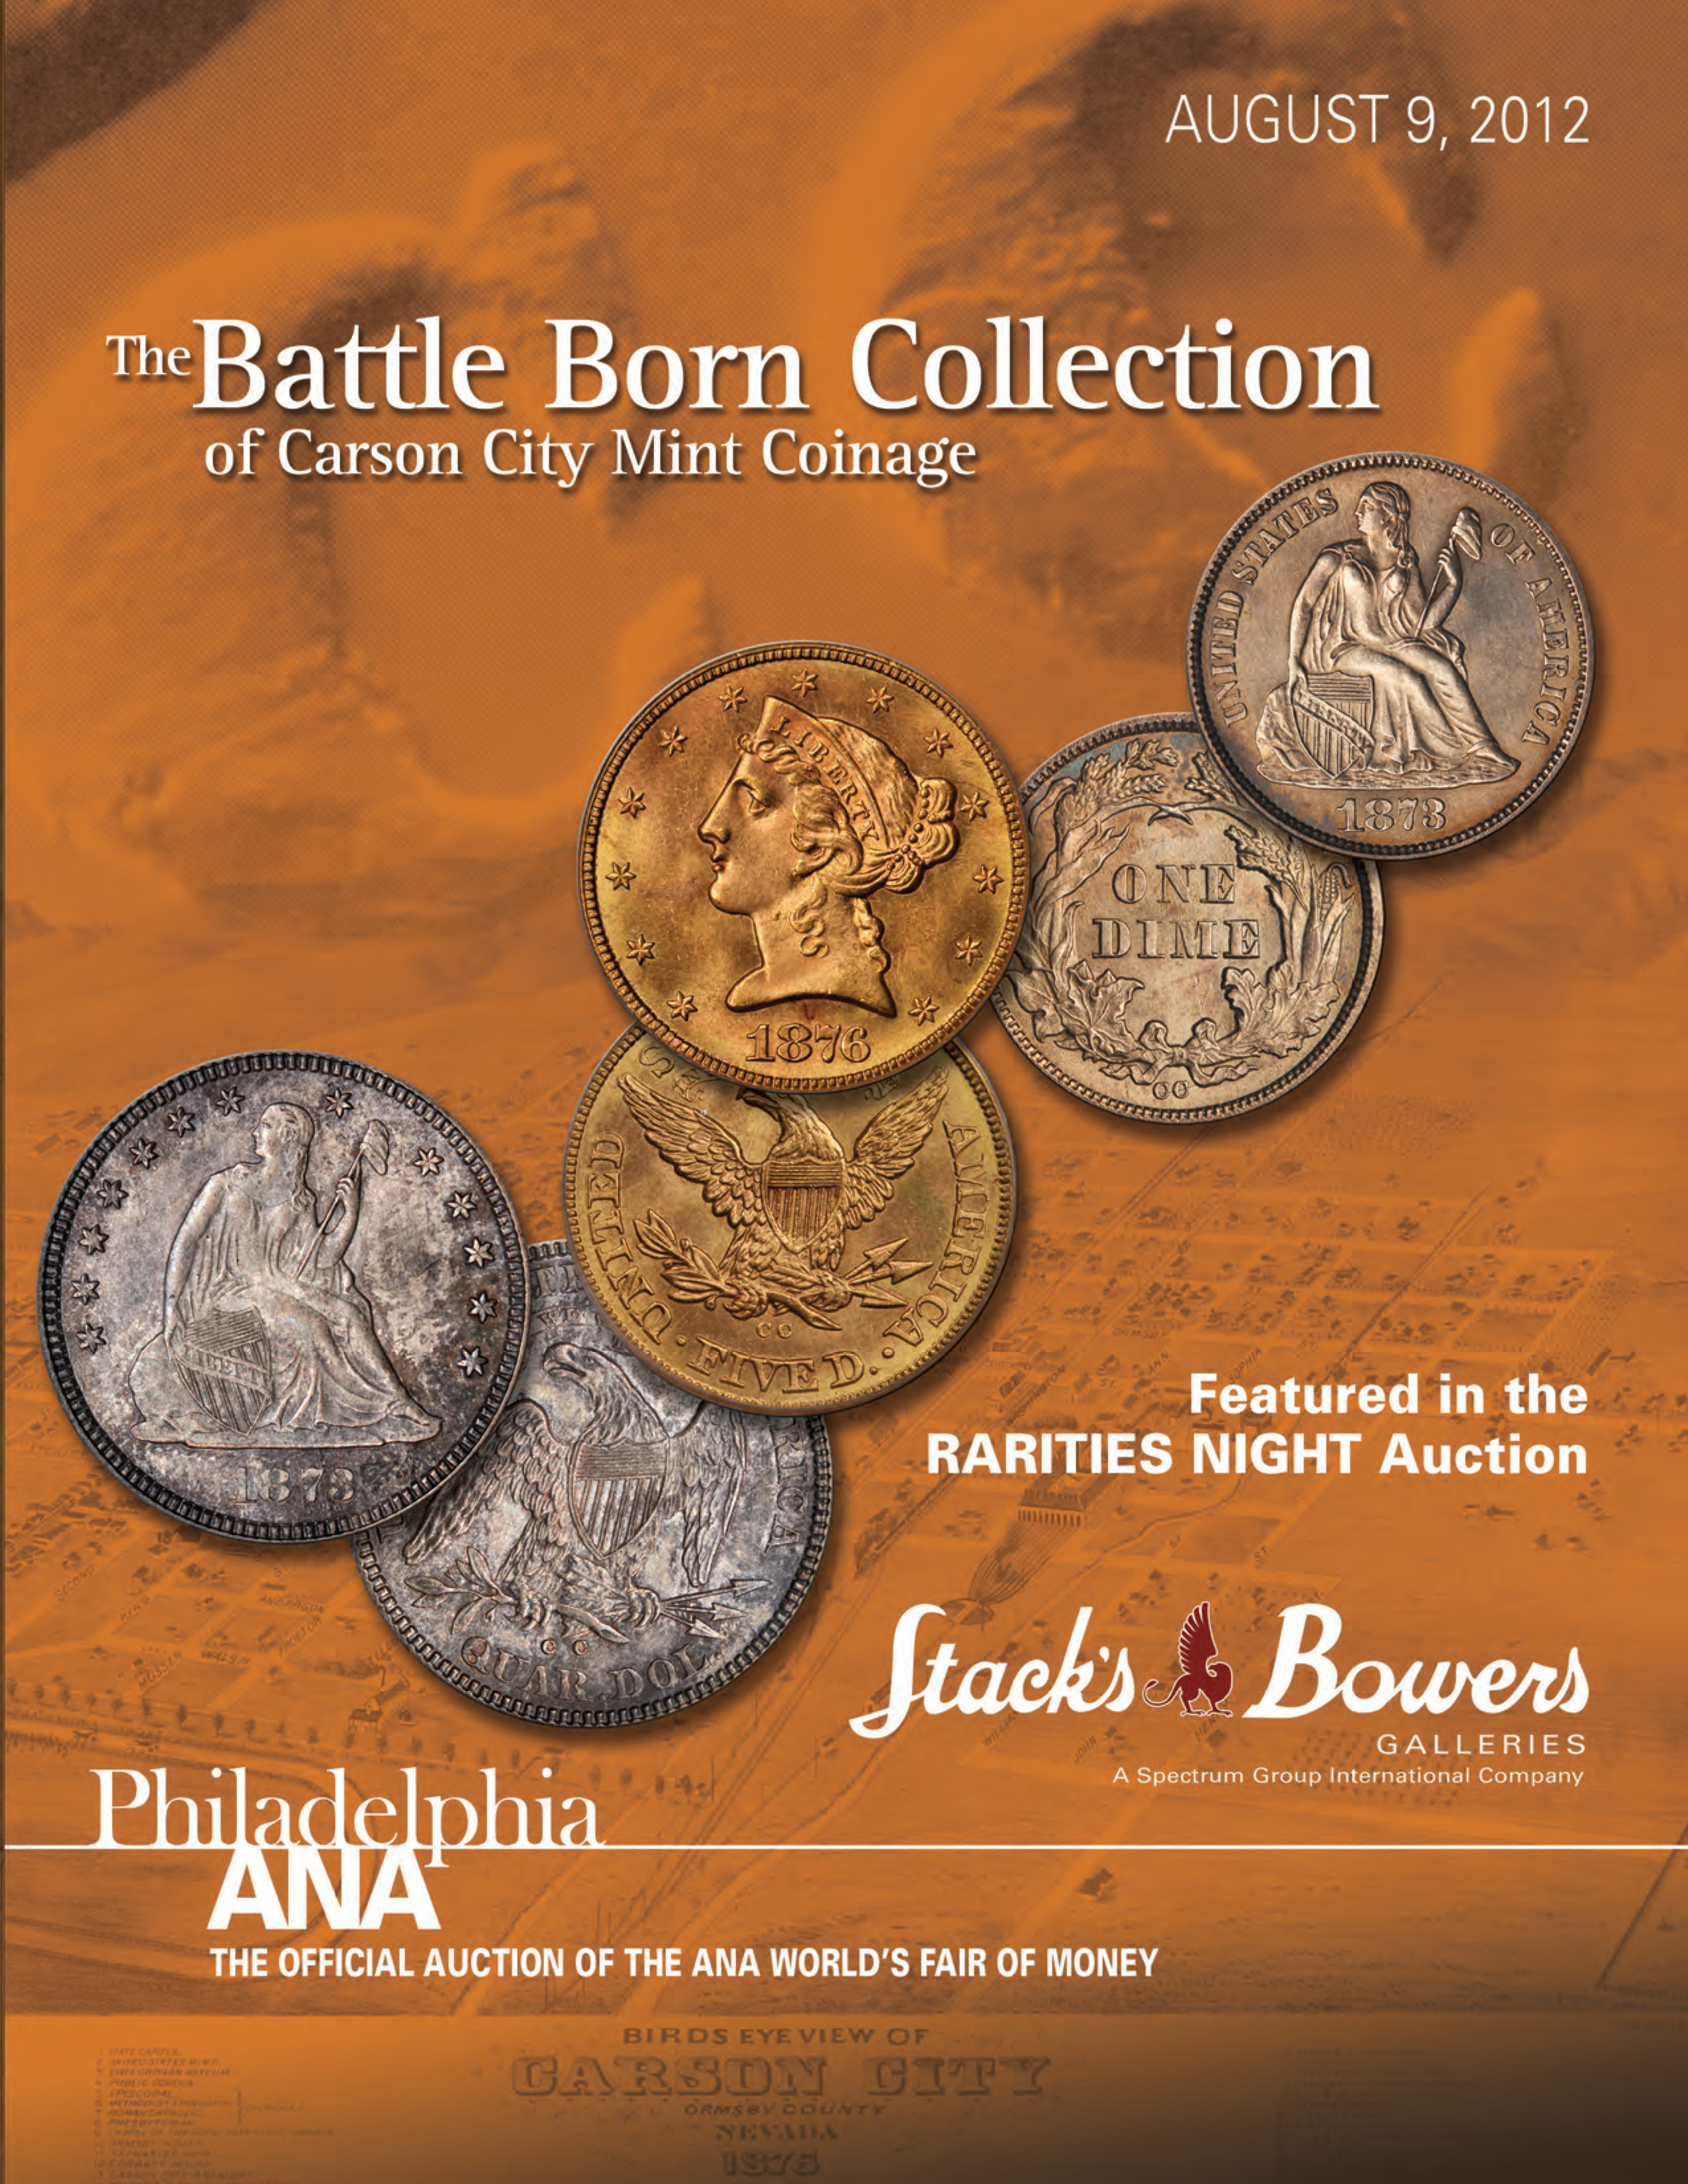 The Battle Born Collection of Carson City Mint Coinage Featured in the Rarities Night Auction, Philadelphia ANA